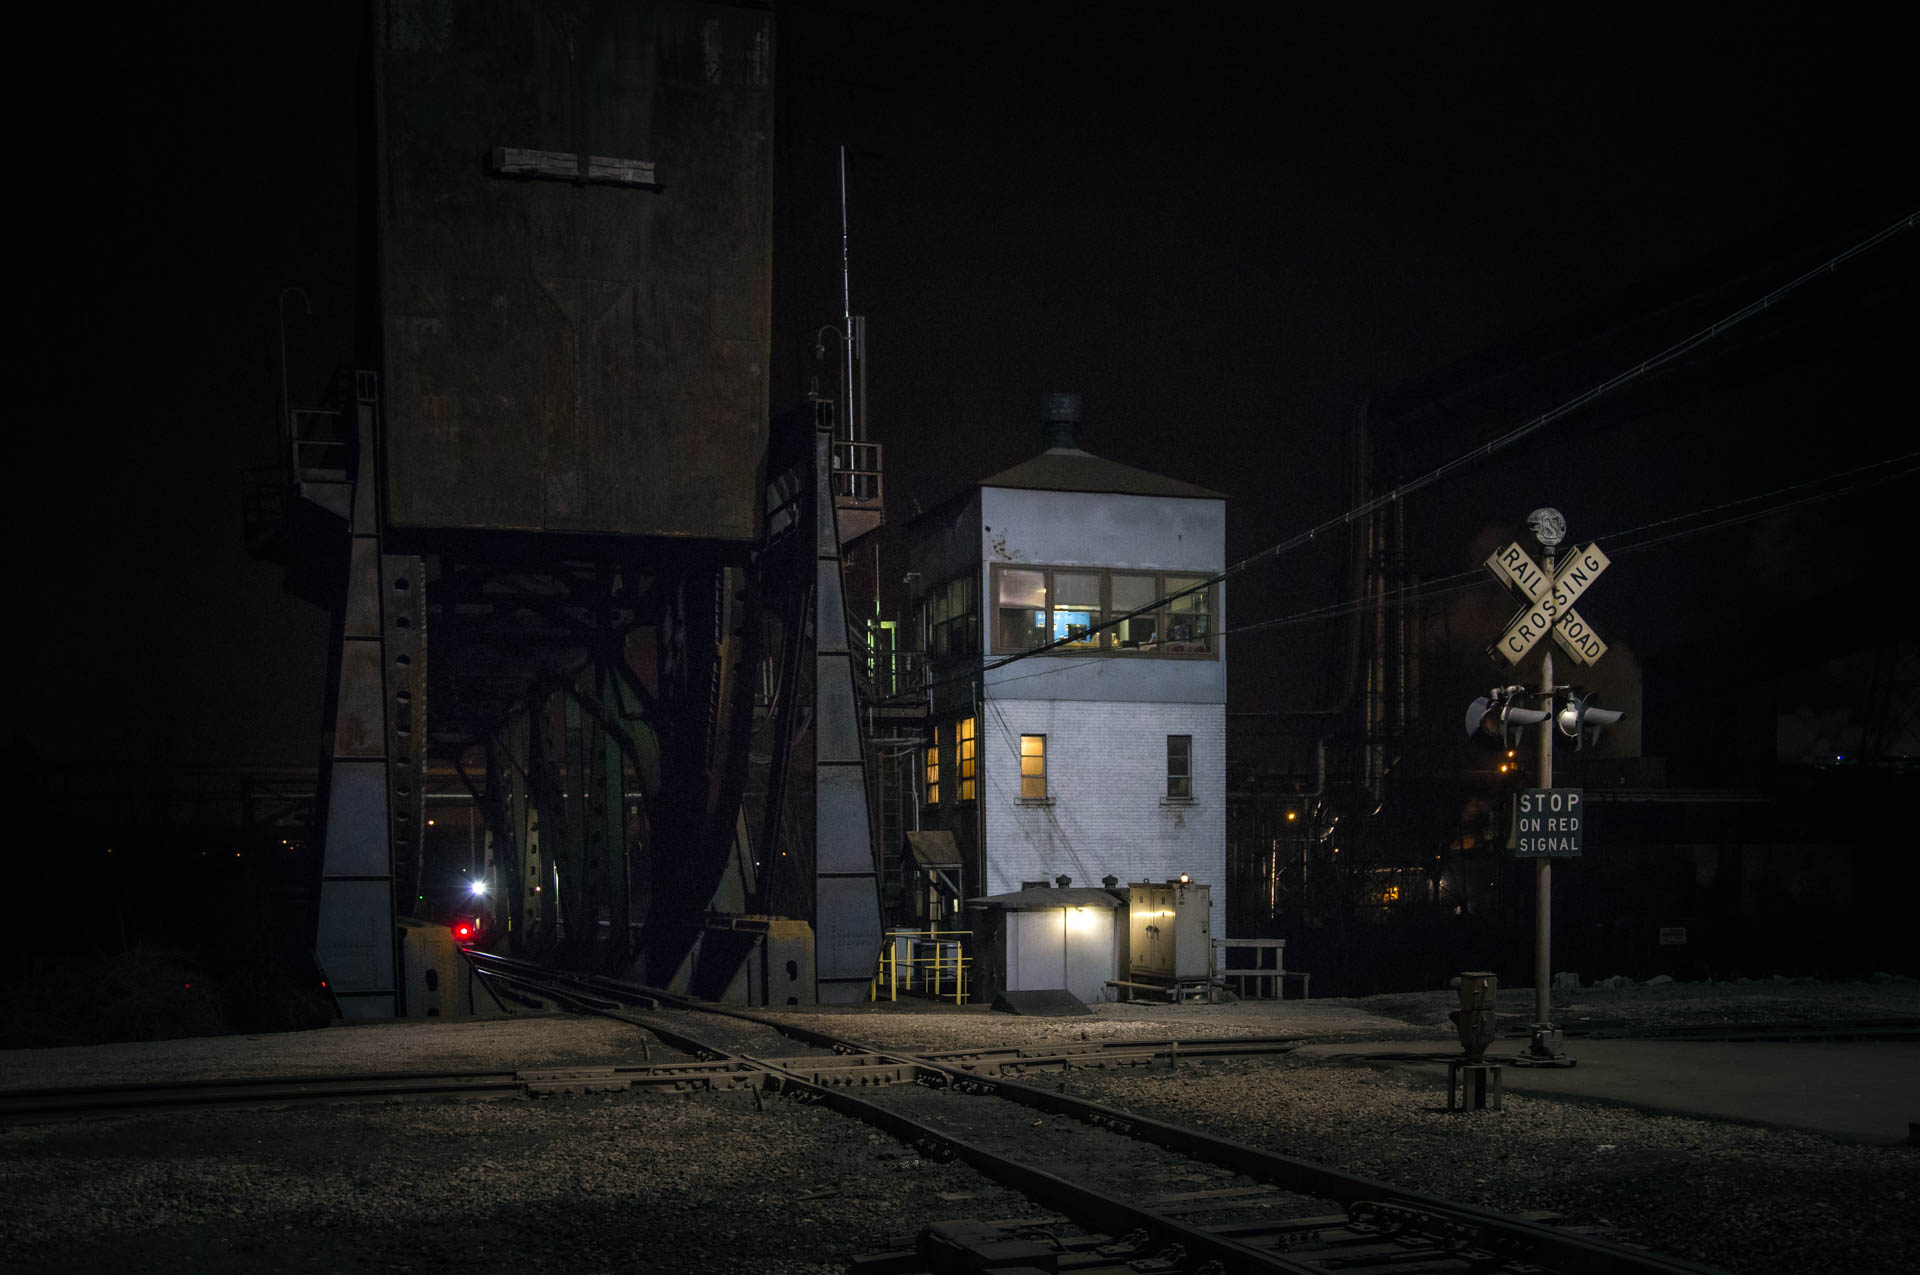 cleveland-works-railroad-clark-avenue-tower-night-cleveland-oh-5198untitled